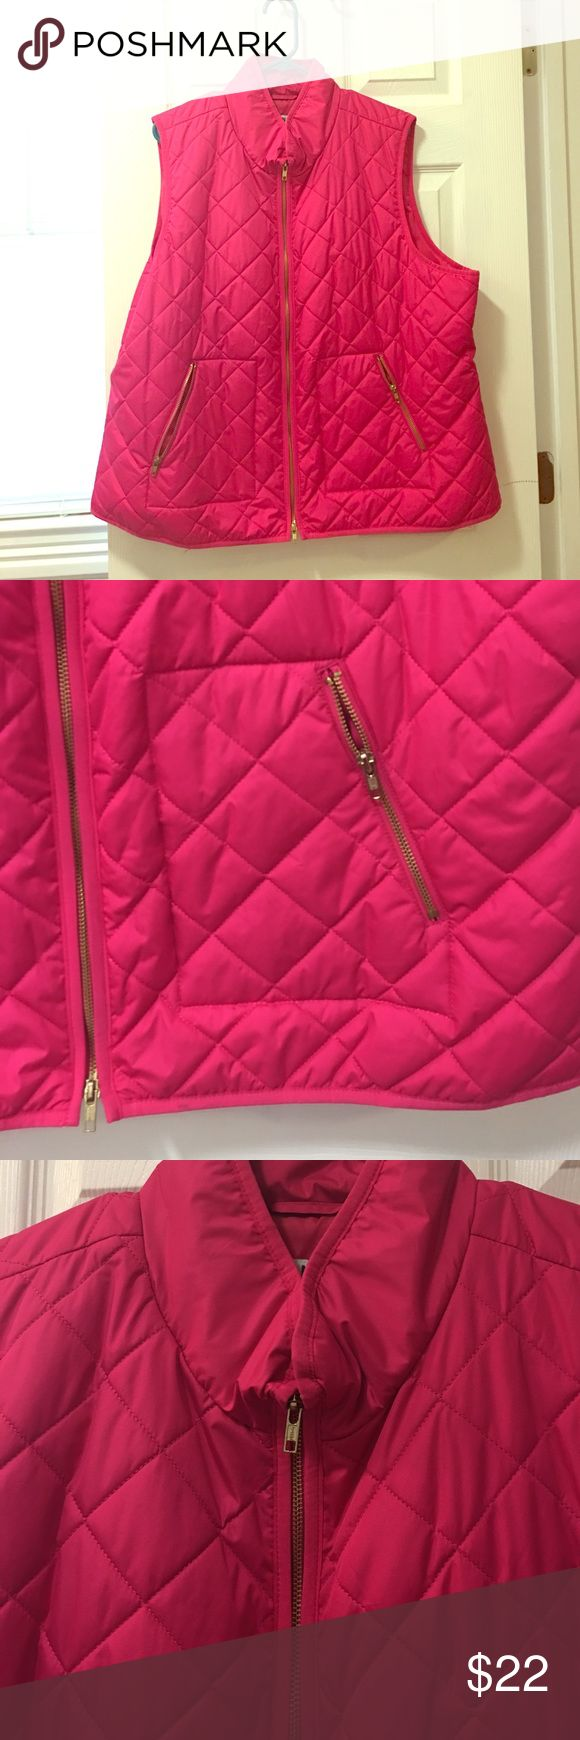 Quilted hot pink vest Old navy quilted vest. Light weight and easy to throw on. Great color for the spring! Old Navy Jackets & Coats Vests